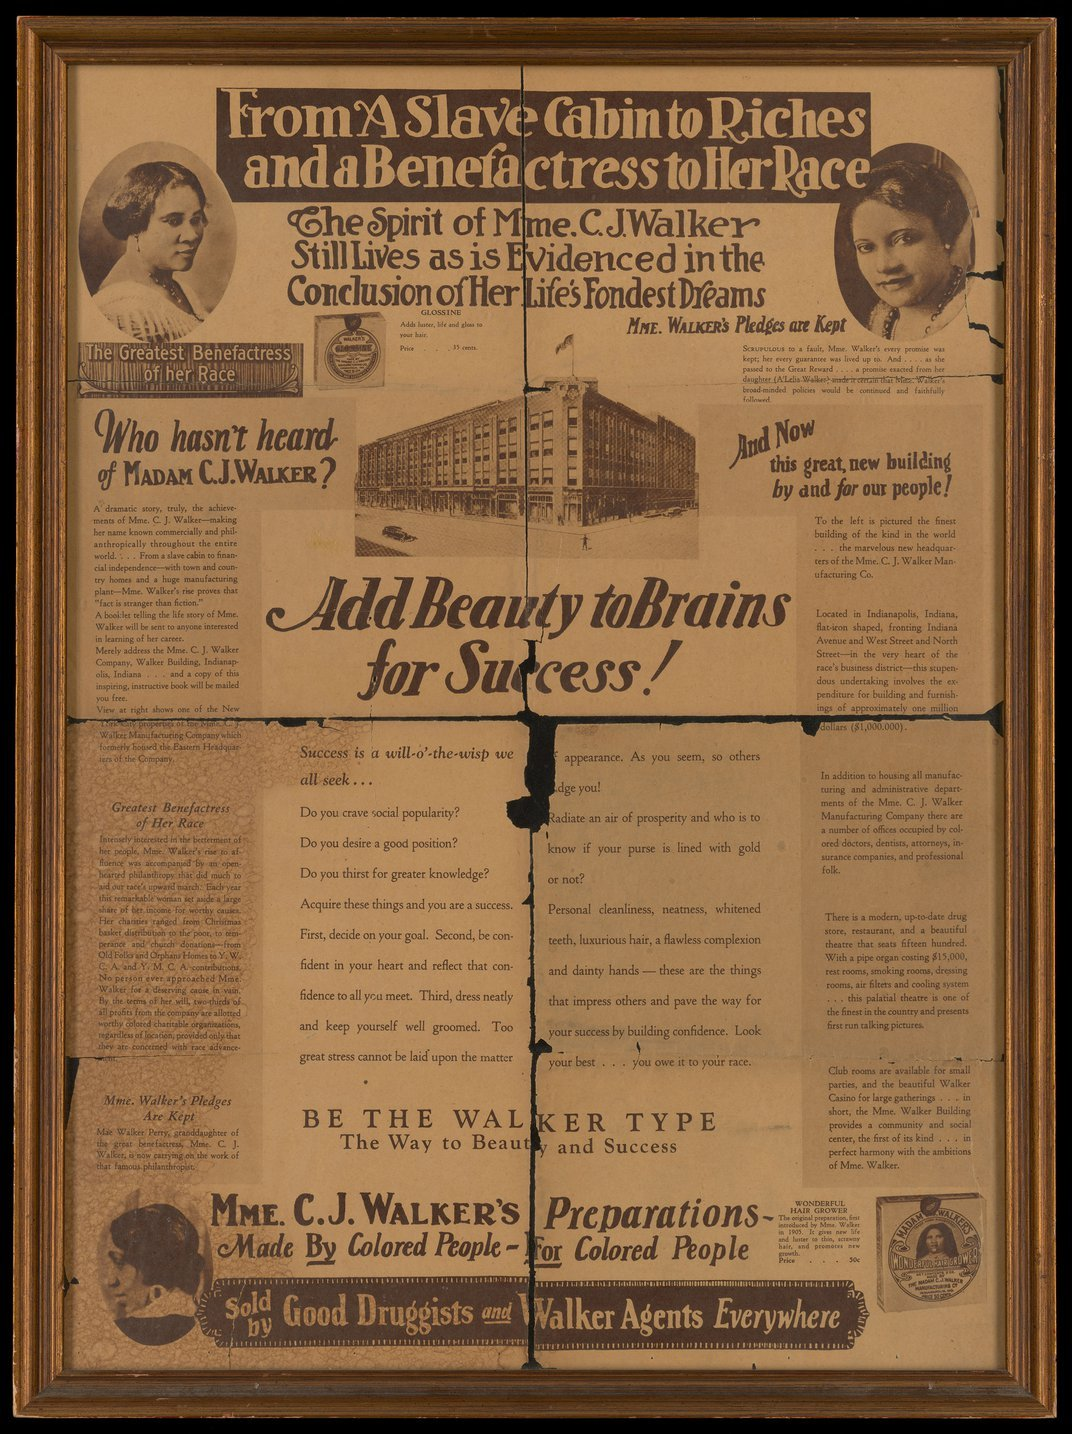 How Business Executive Madam C. J. Walker Became a Powerful Influencer of the Early 20th Century